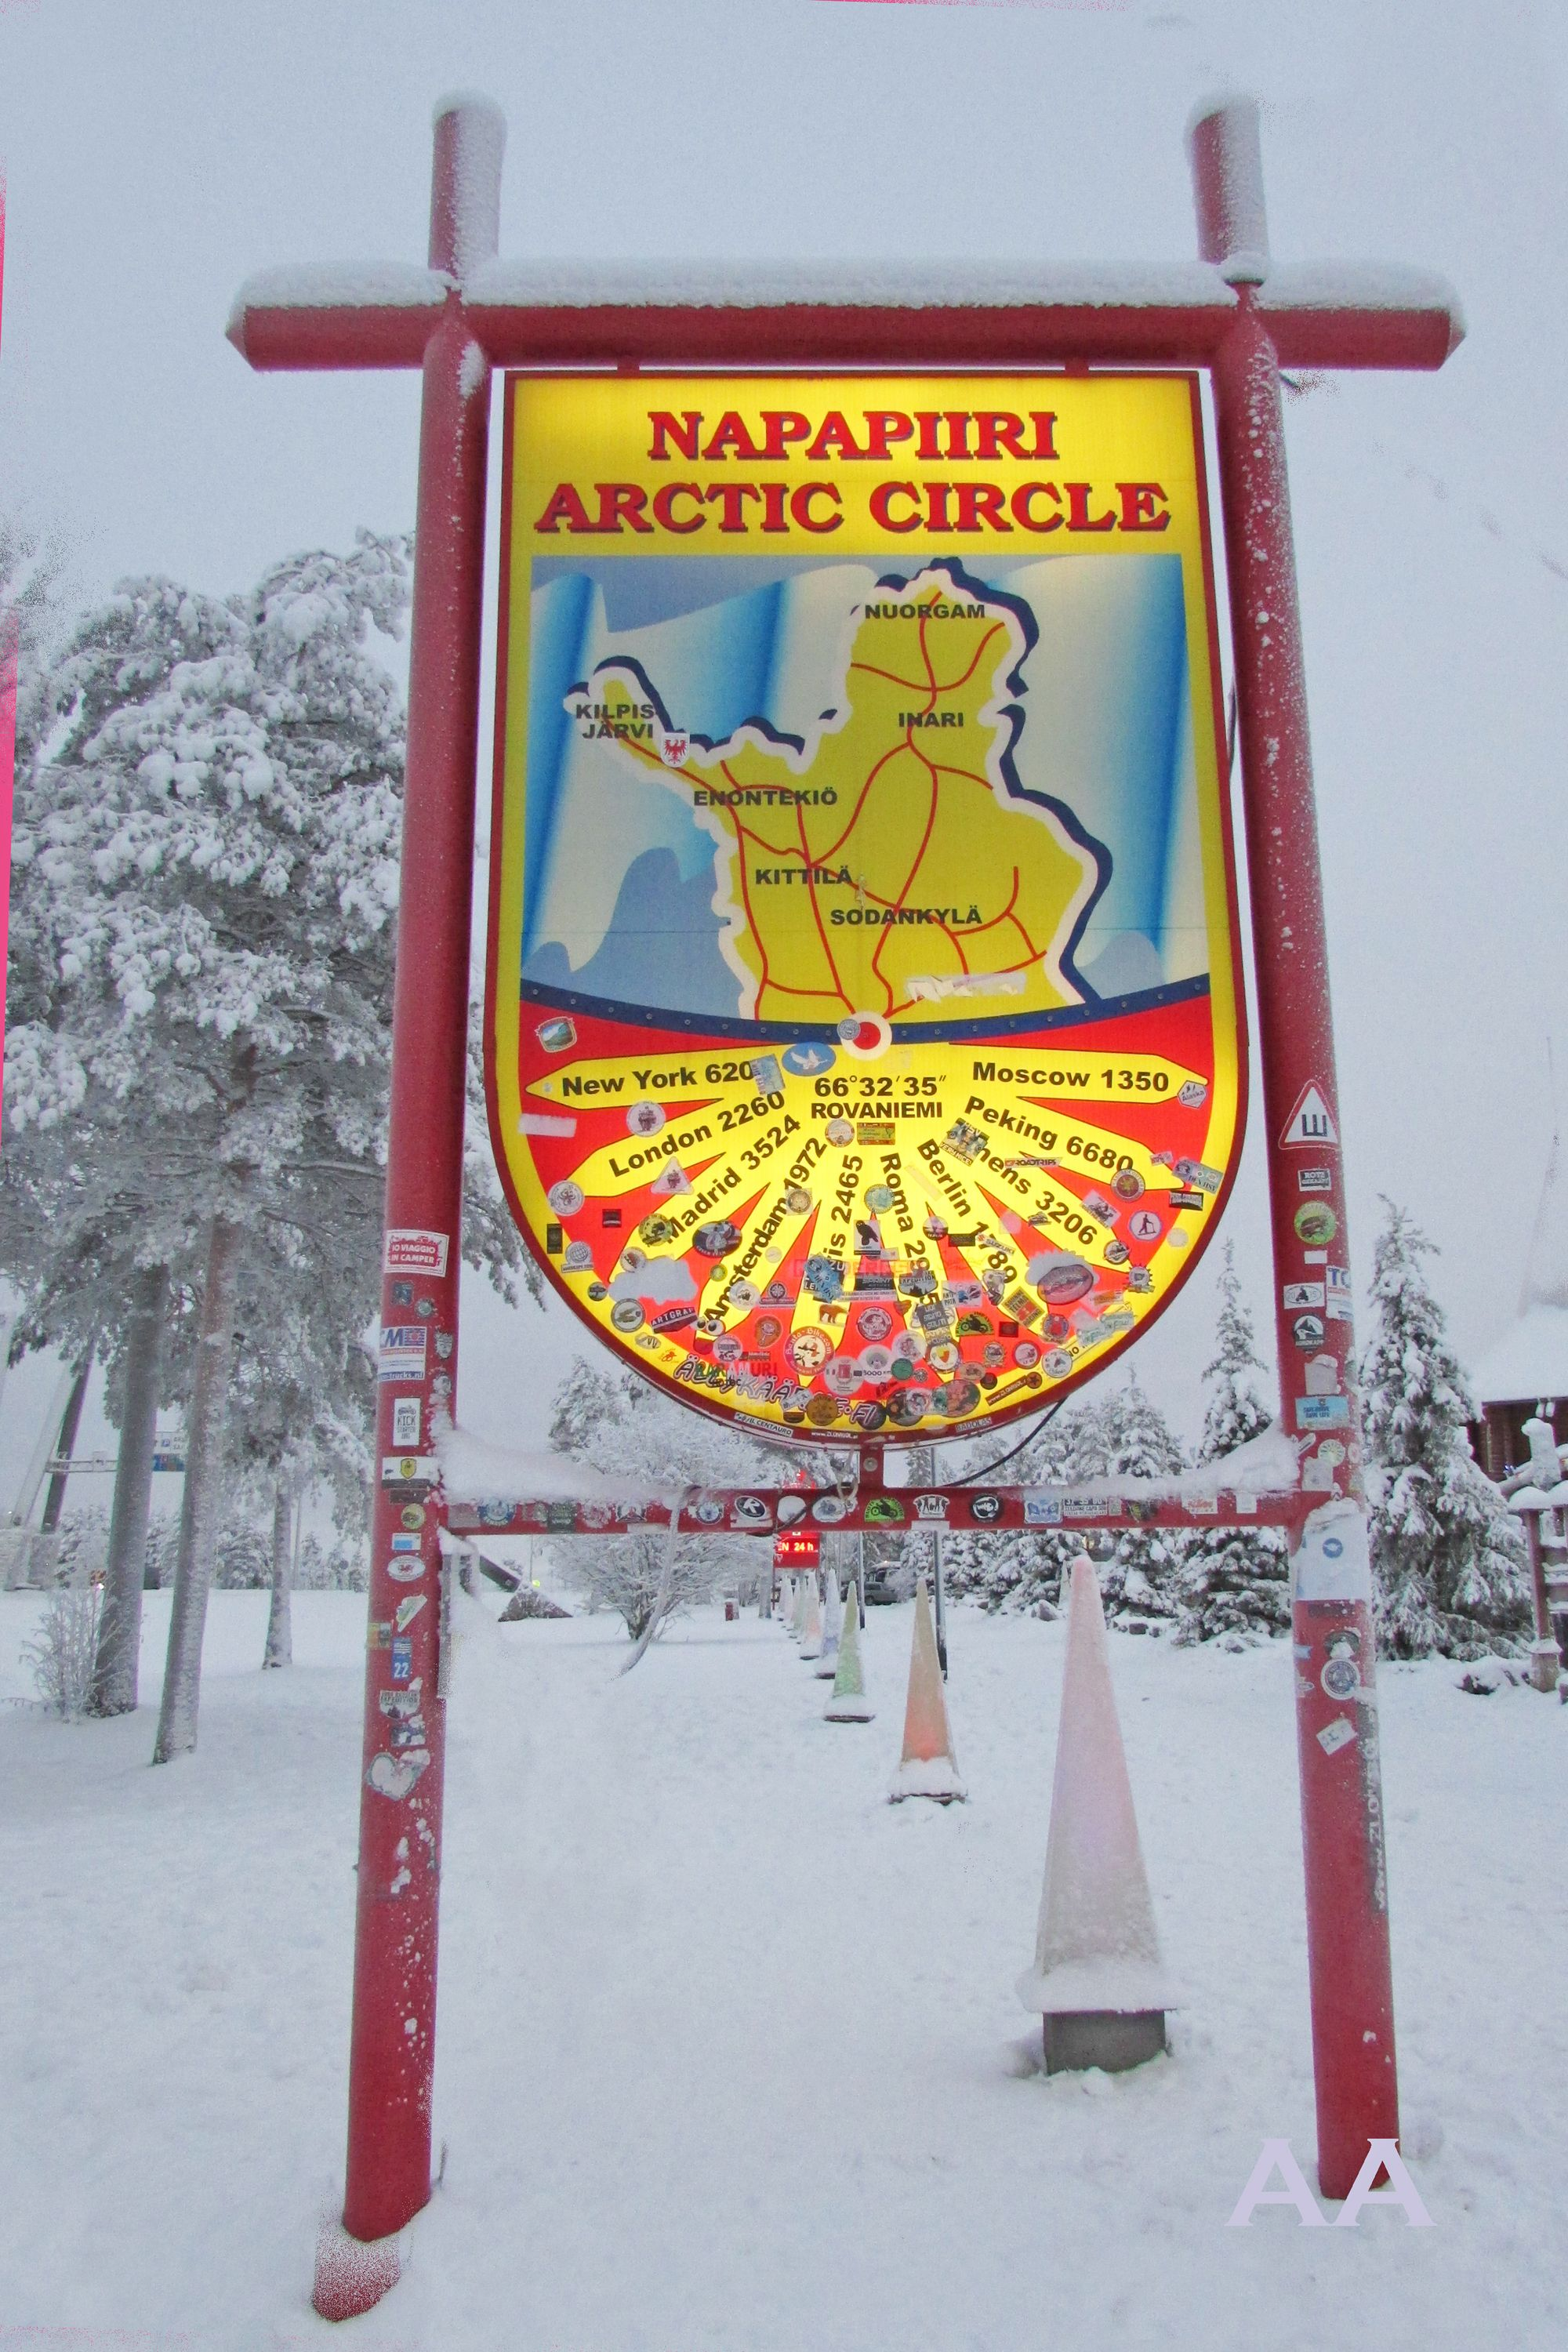 Napapiiri Arctic Circle The Polar Night In Finland Rovaniemi